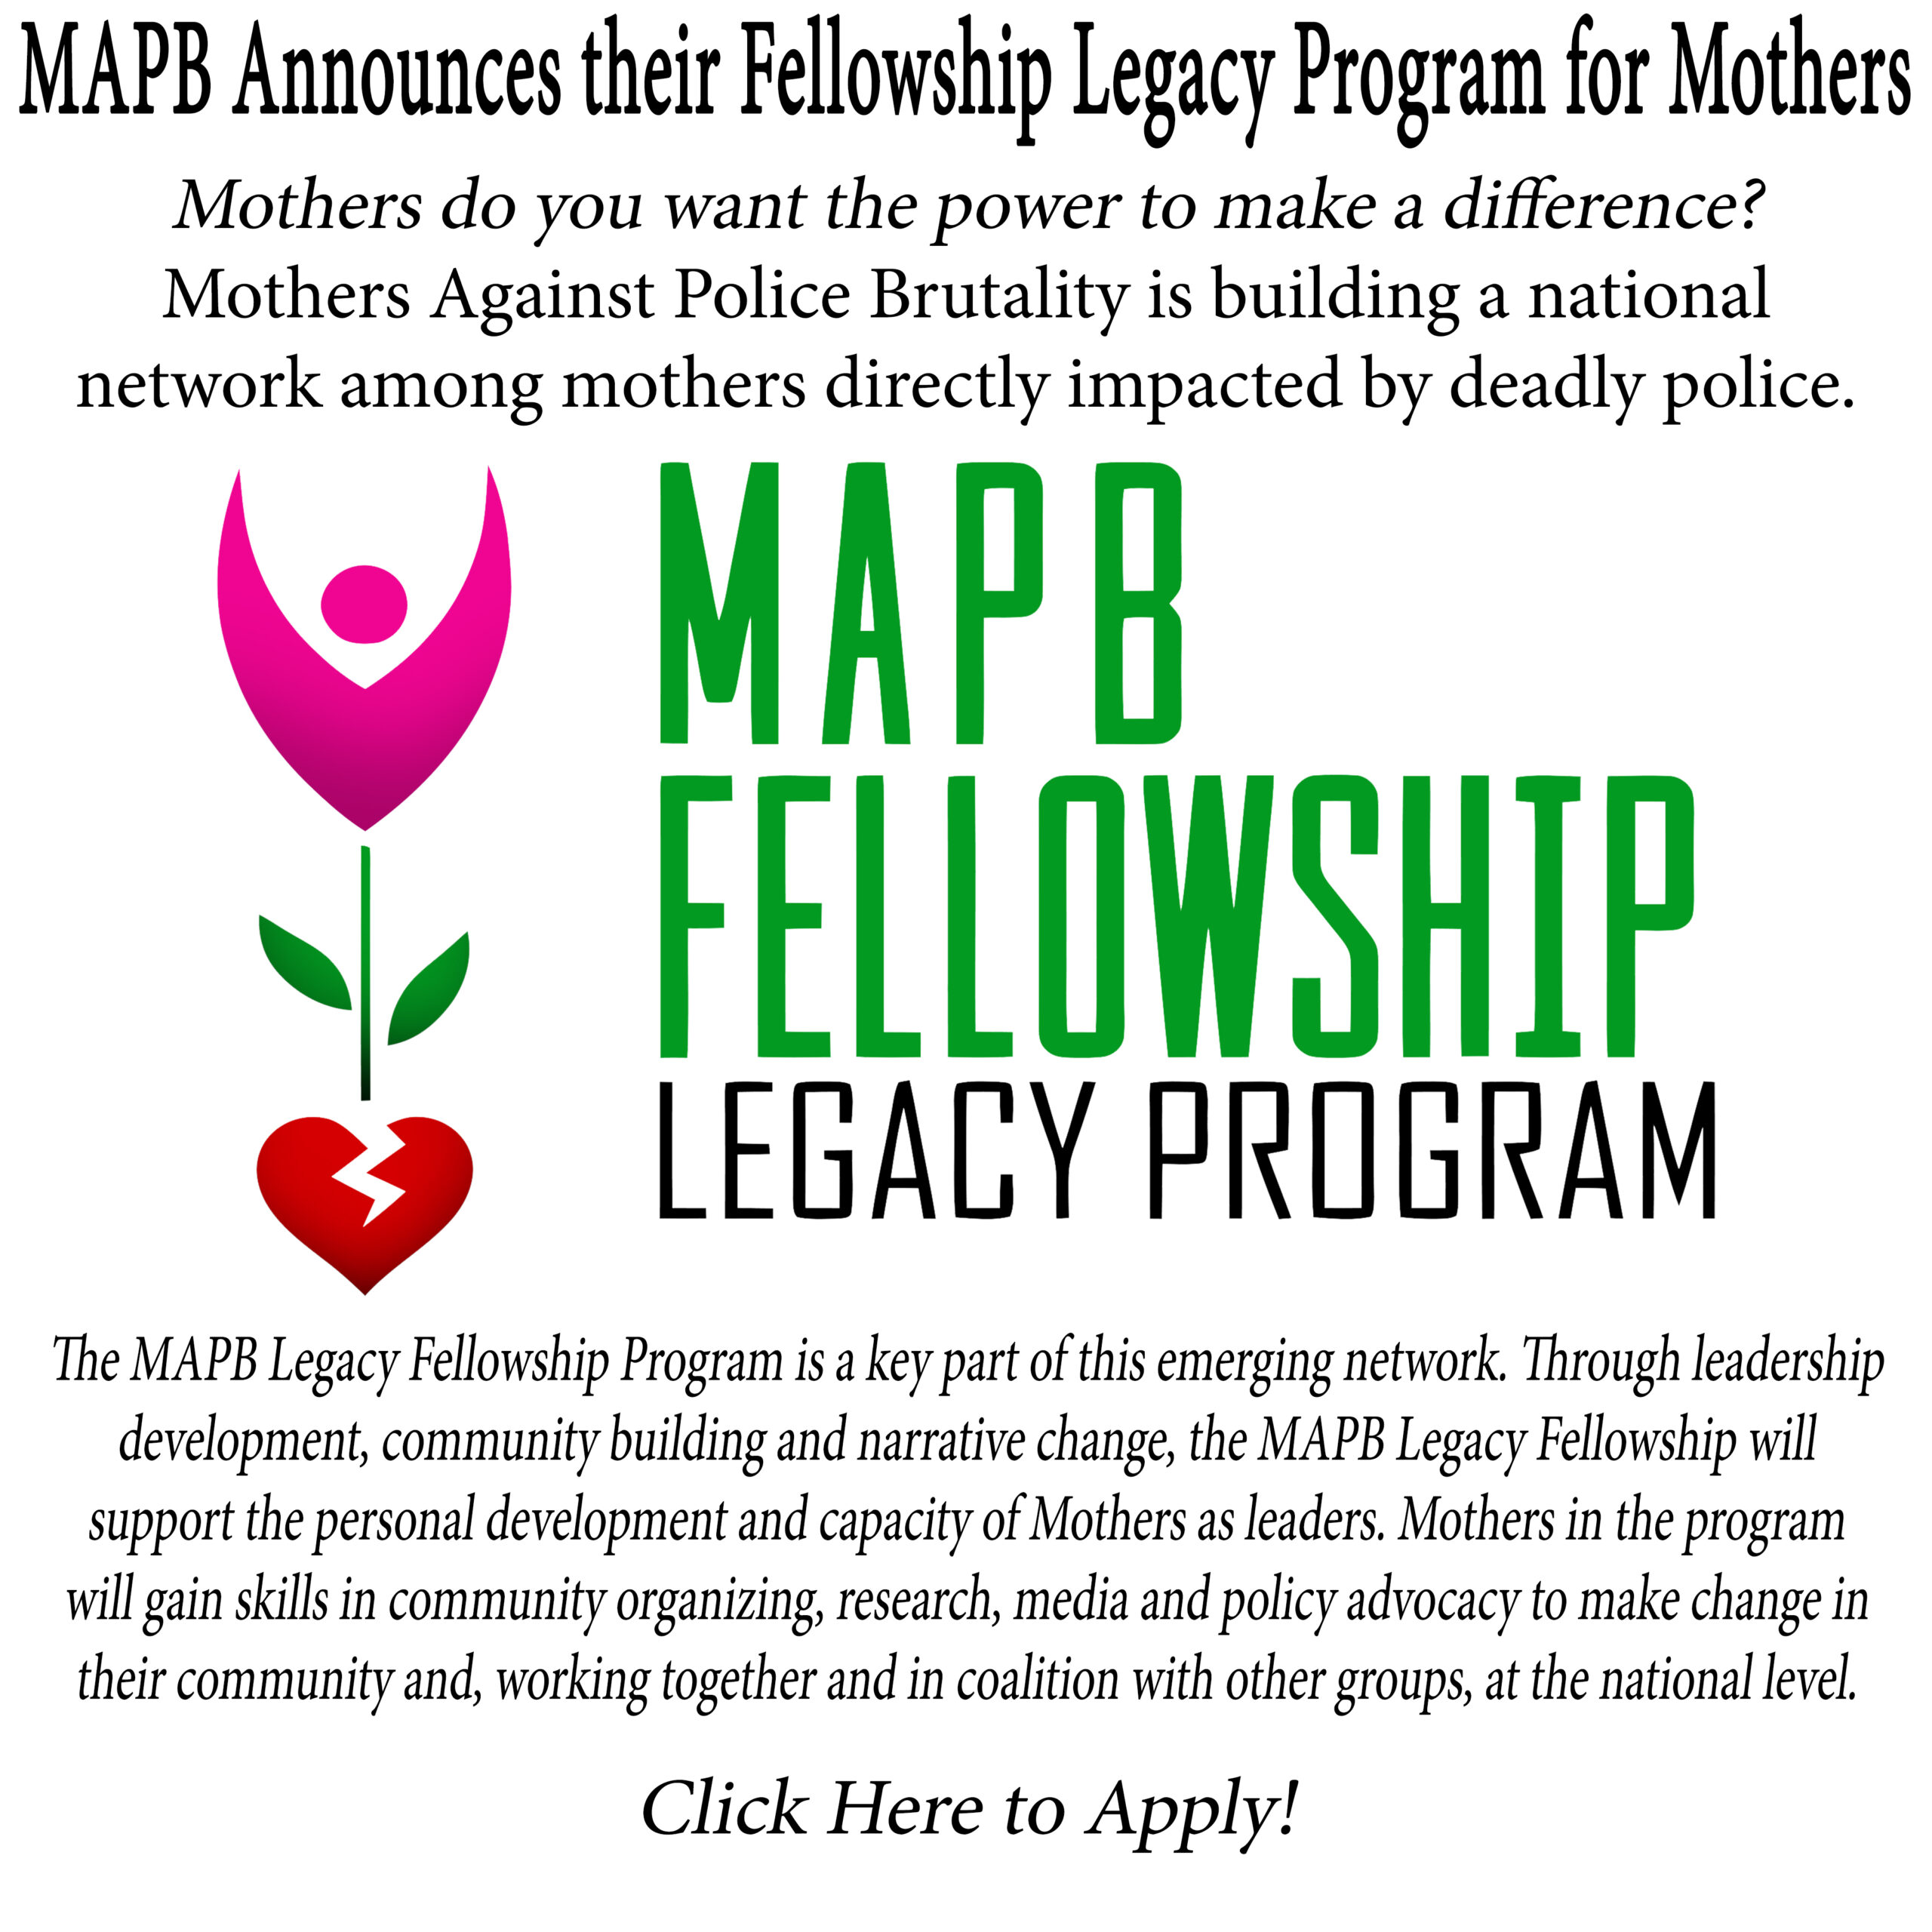 Click here apply to the 2021 MAPB Fellowship Legacy Program